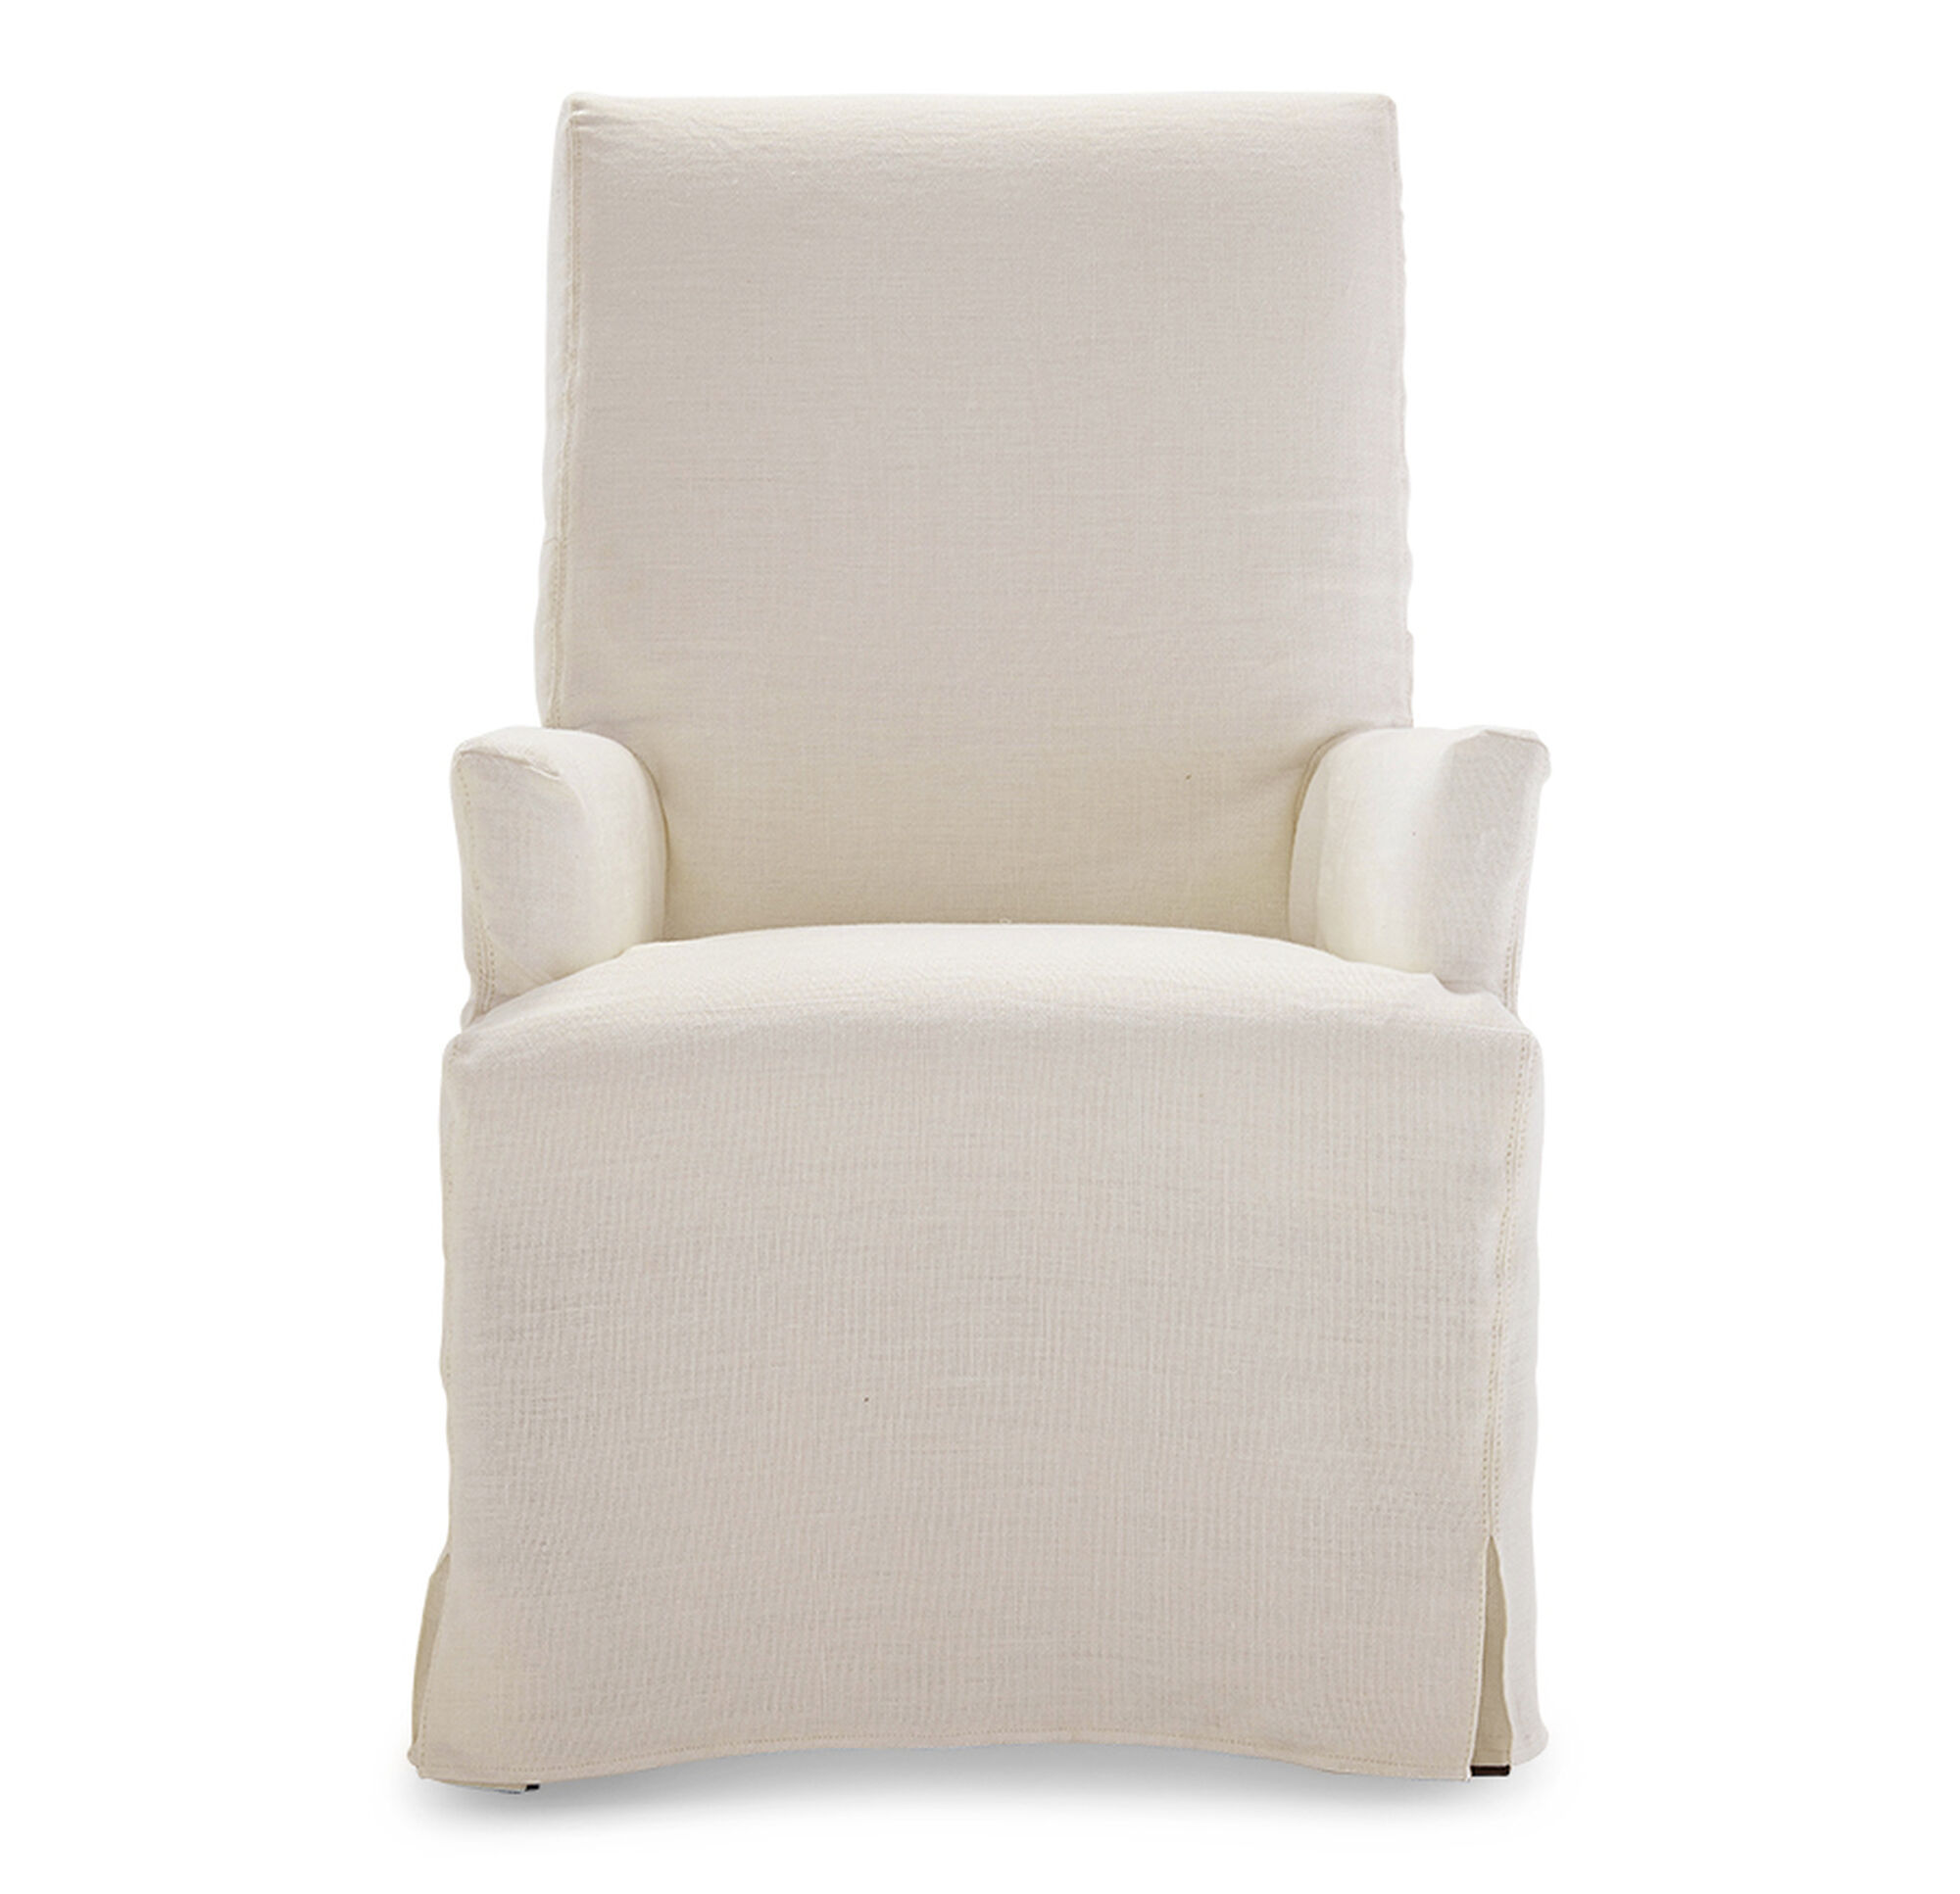 with arms cottndck dining slipcovers drc long enz products for cotton surefit slipcover chairs sage chair duck